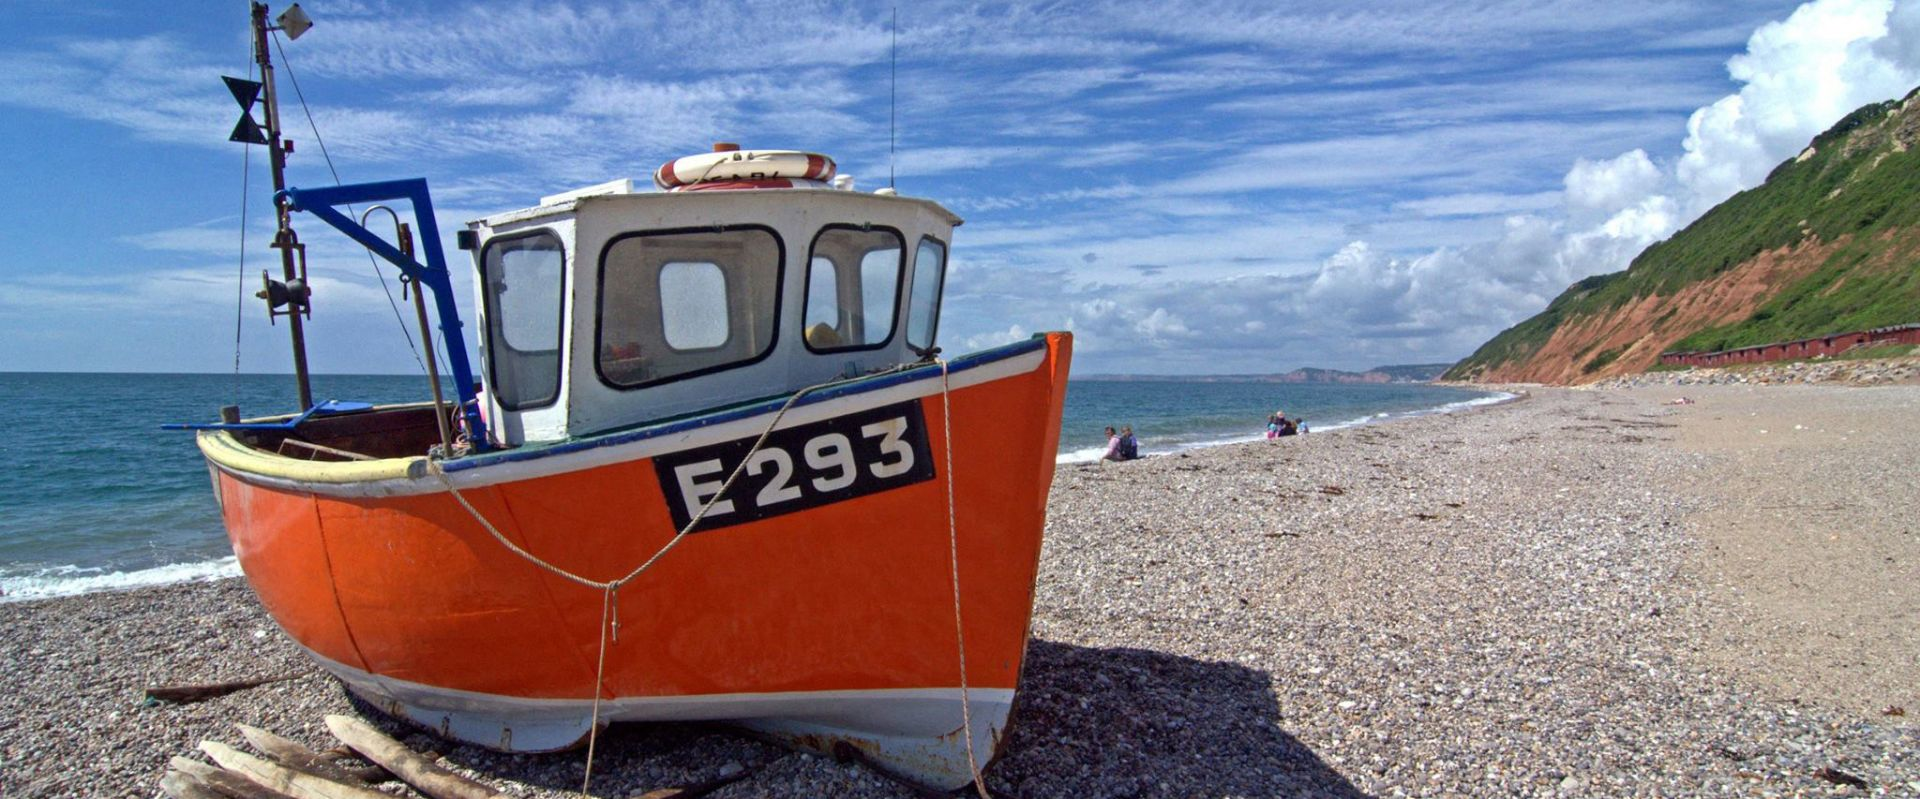 Fishing boat at Branscombe